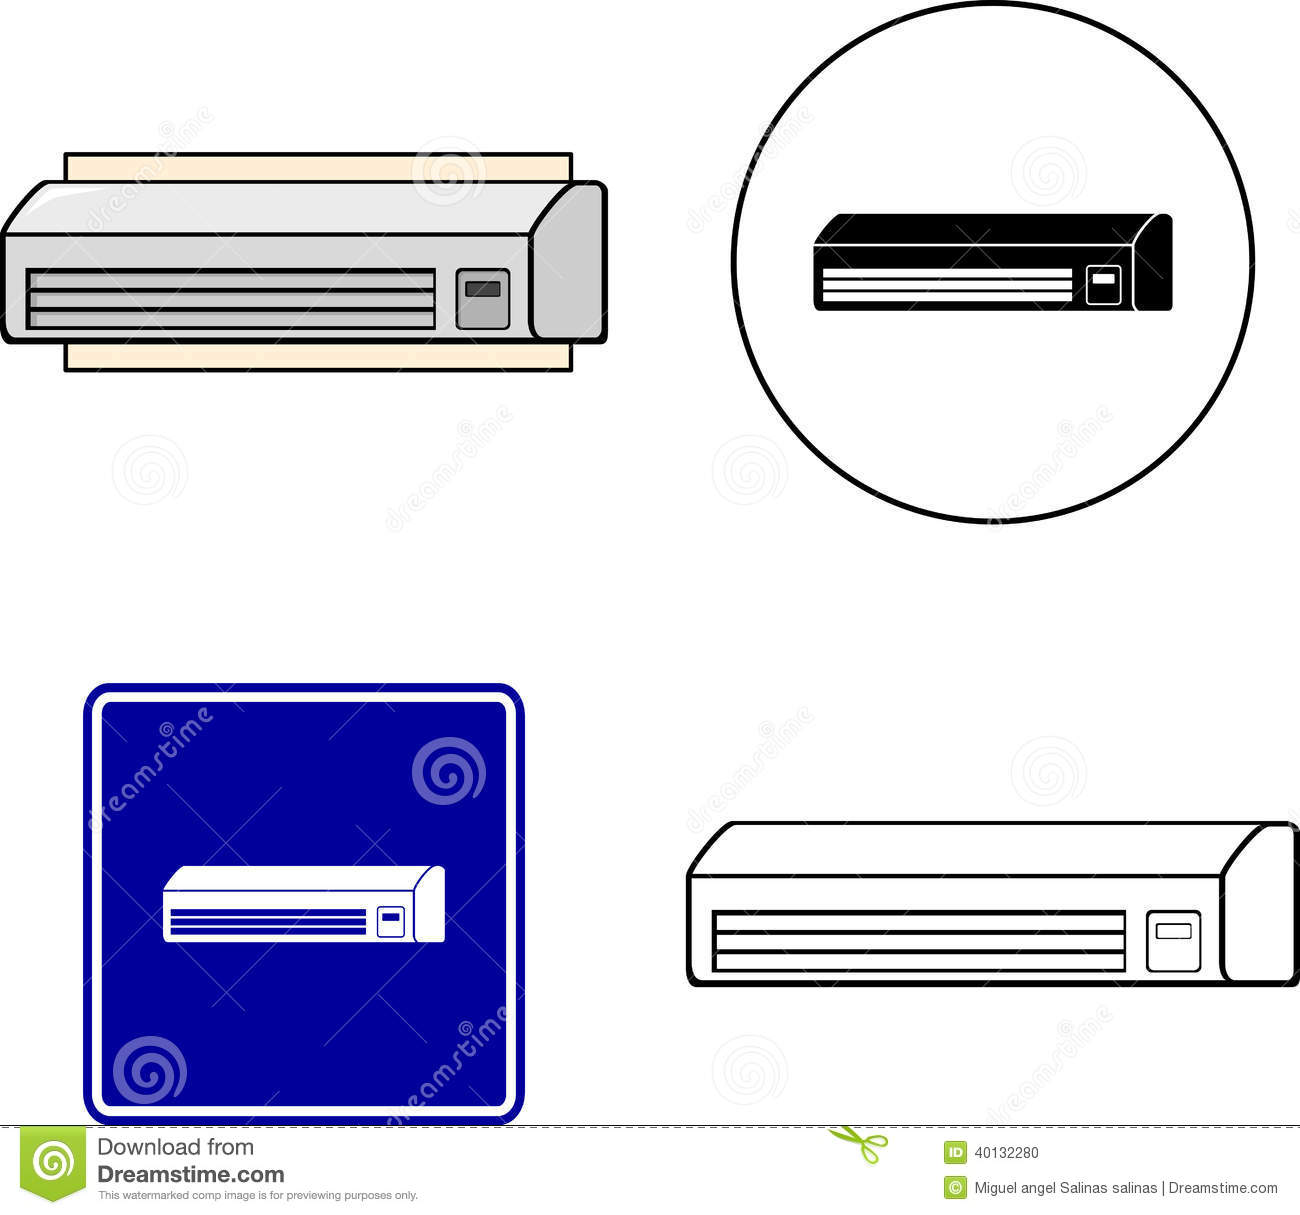 and white illustrations of an air conditioner mini split apparatus #020299